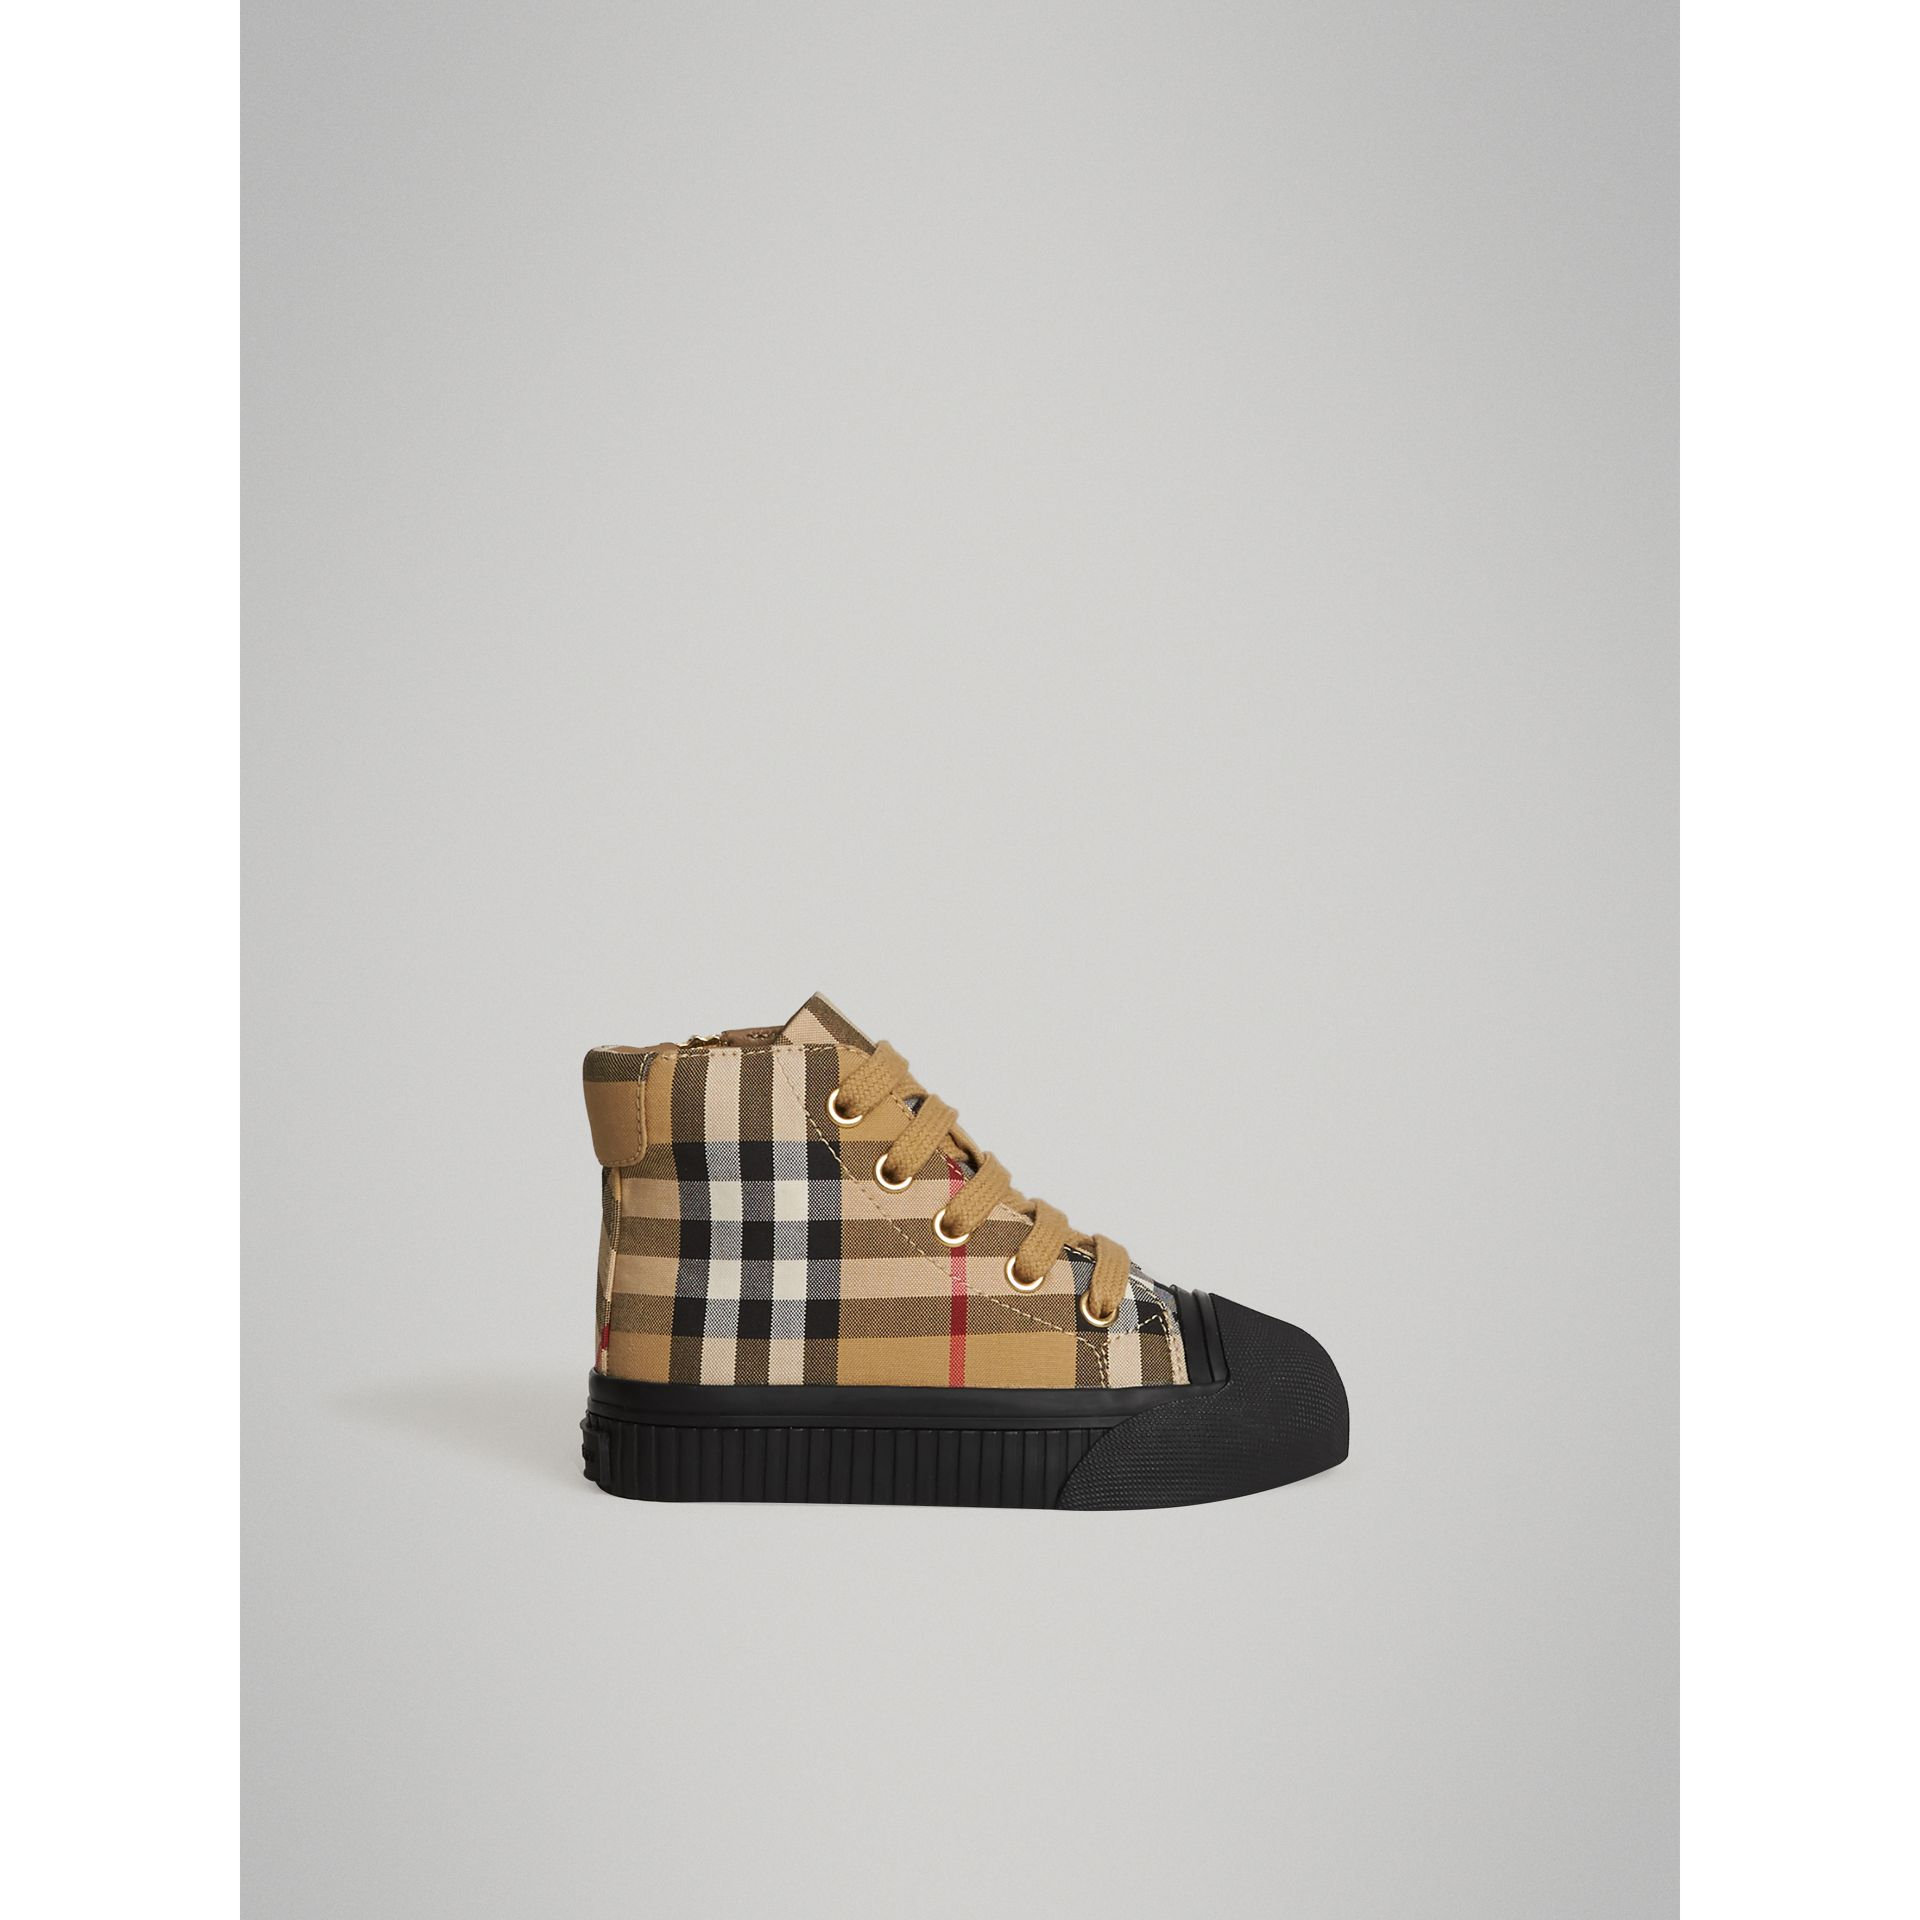 Sneakers montantes en cuir et à motif Vintage check (Jaune Antique/noir) - Enfant | Burberry - photo de la galerie 3